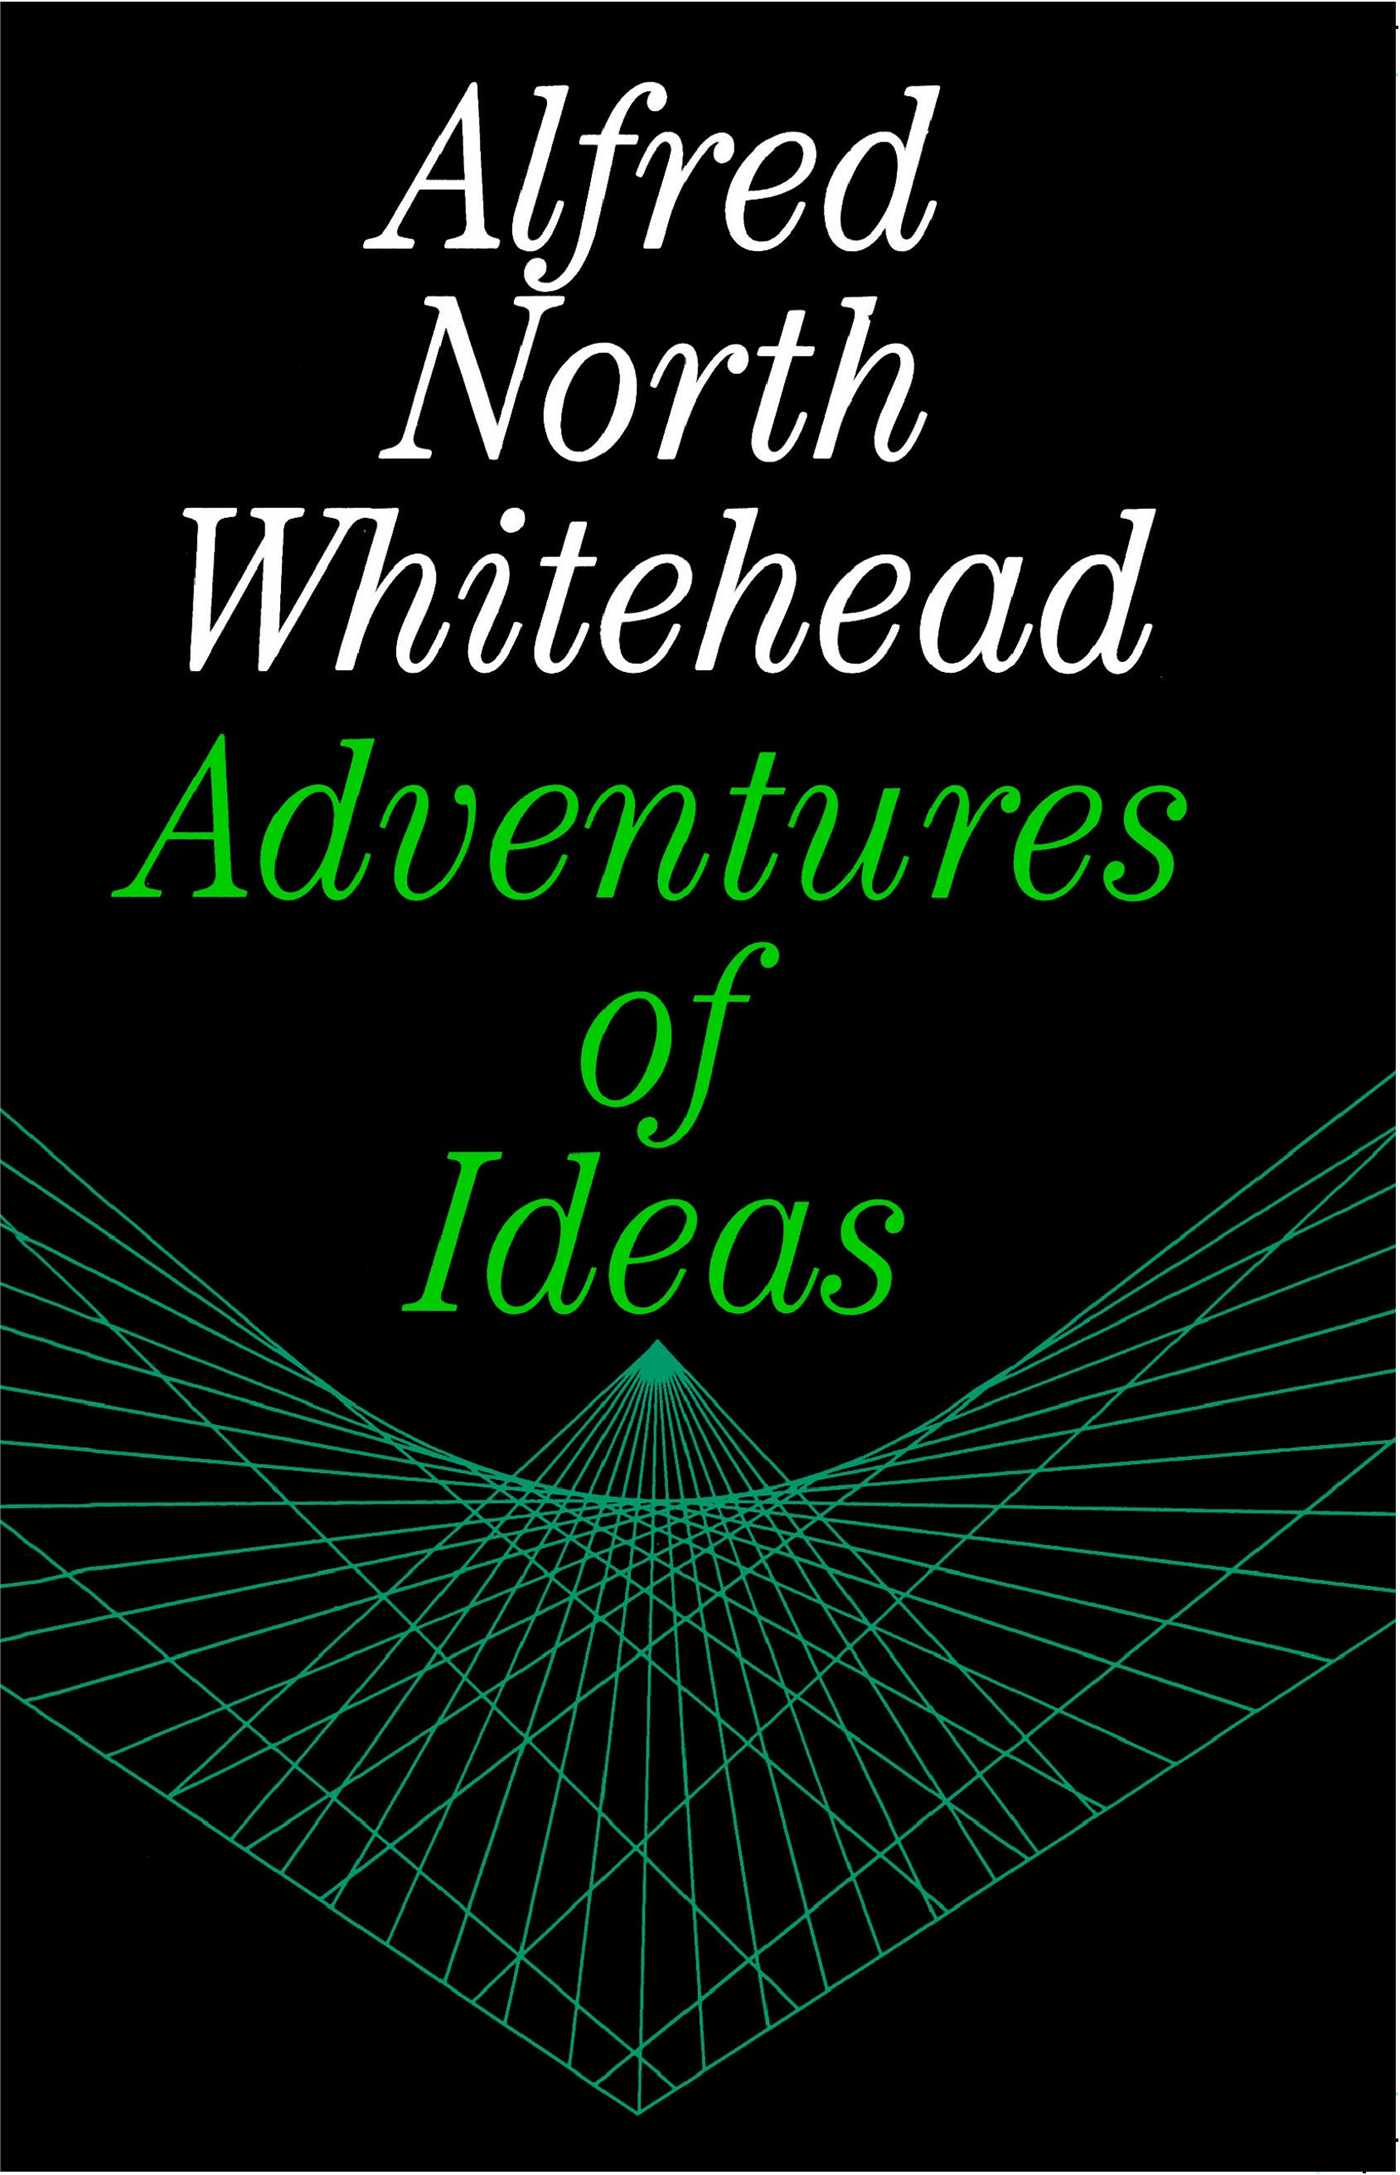 Adventures-of-ideas-9780029351703_hr